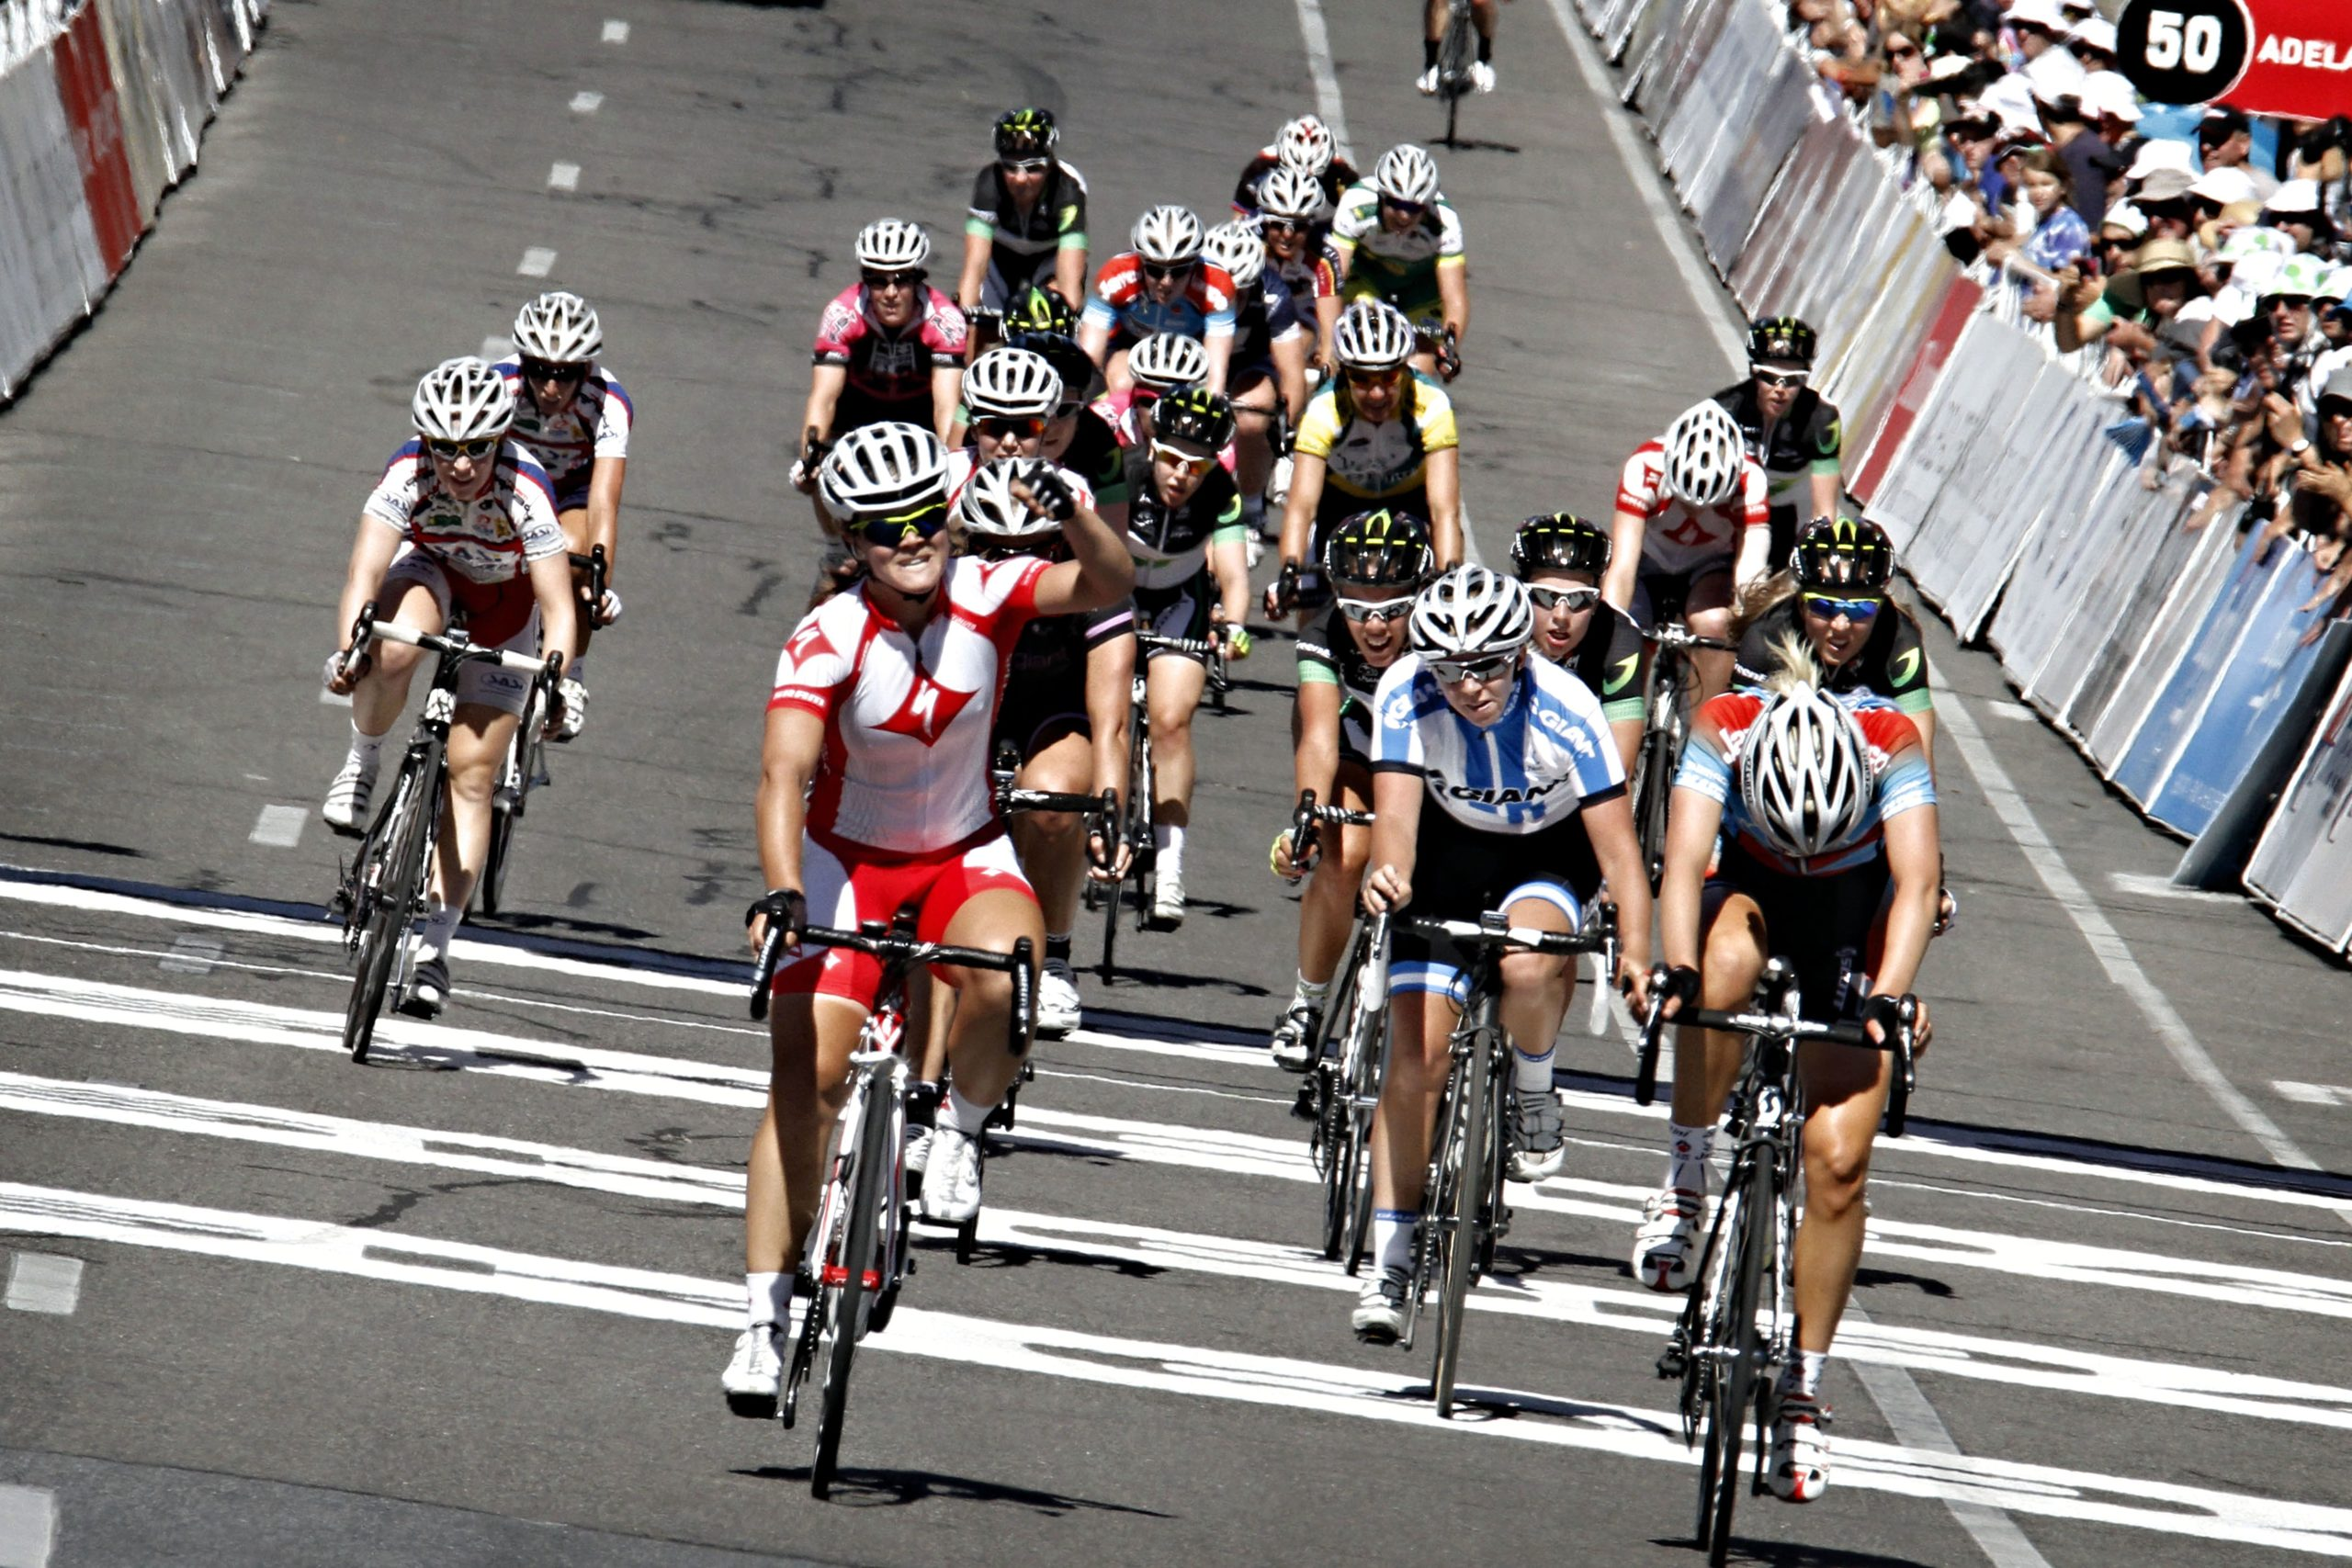 Rebecca Werner pictured during the criterium in Adelaide - Santos Women Cup - foto Cor Vos ©2012